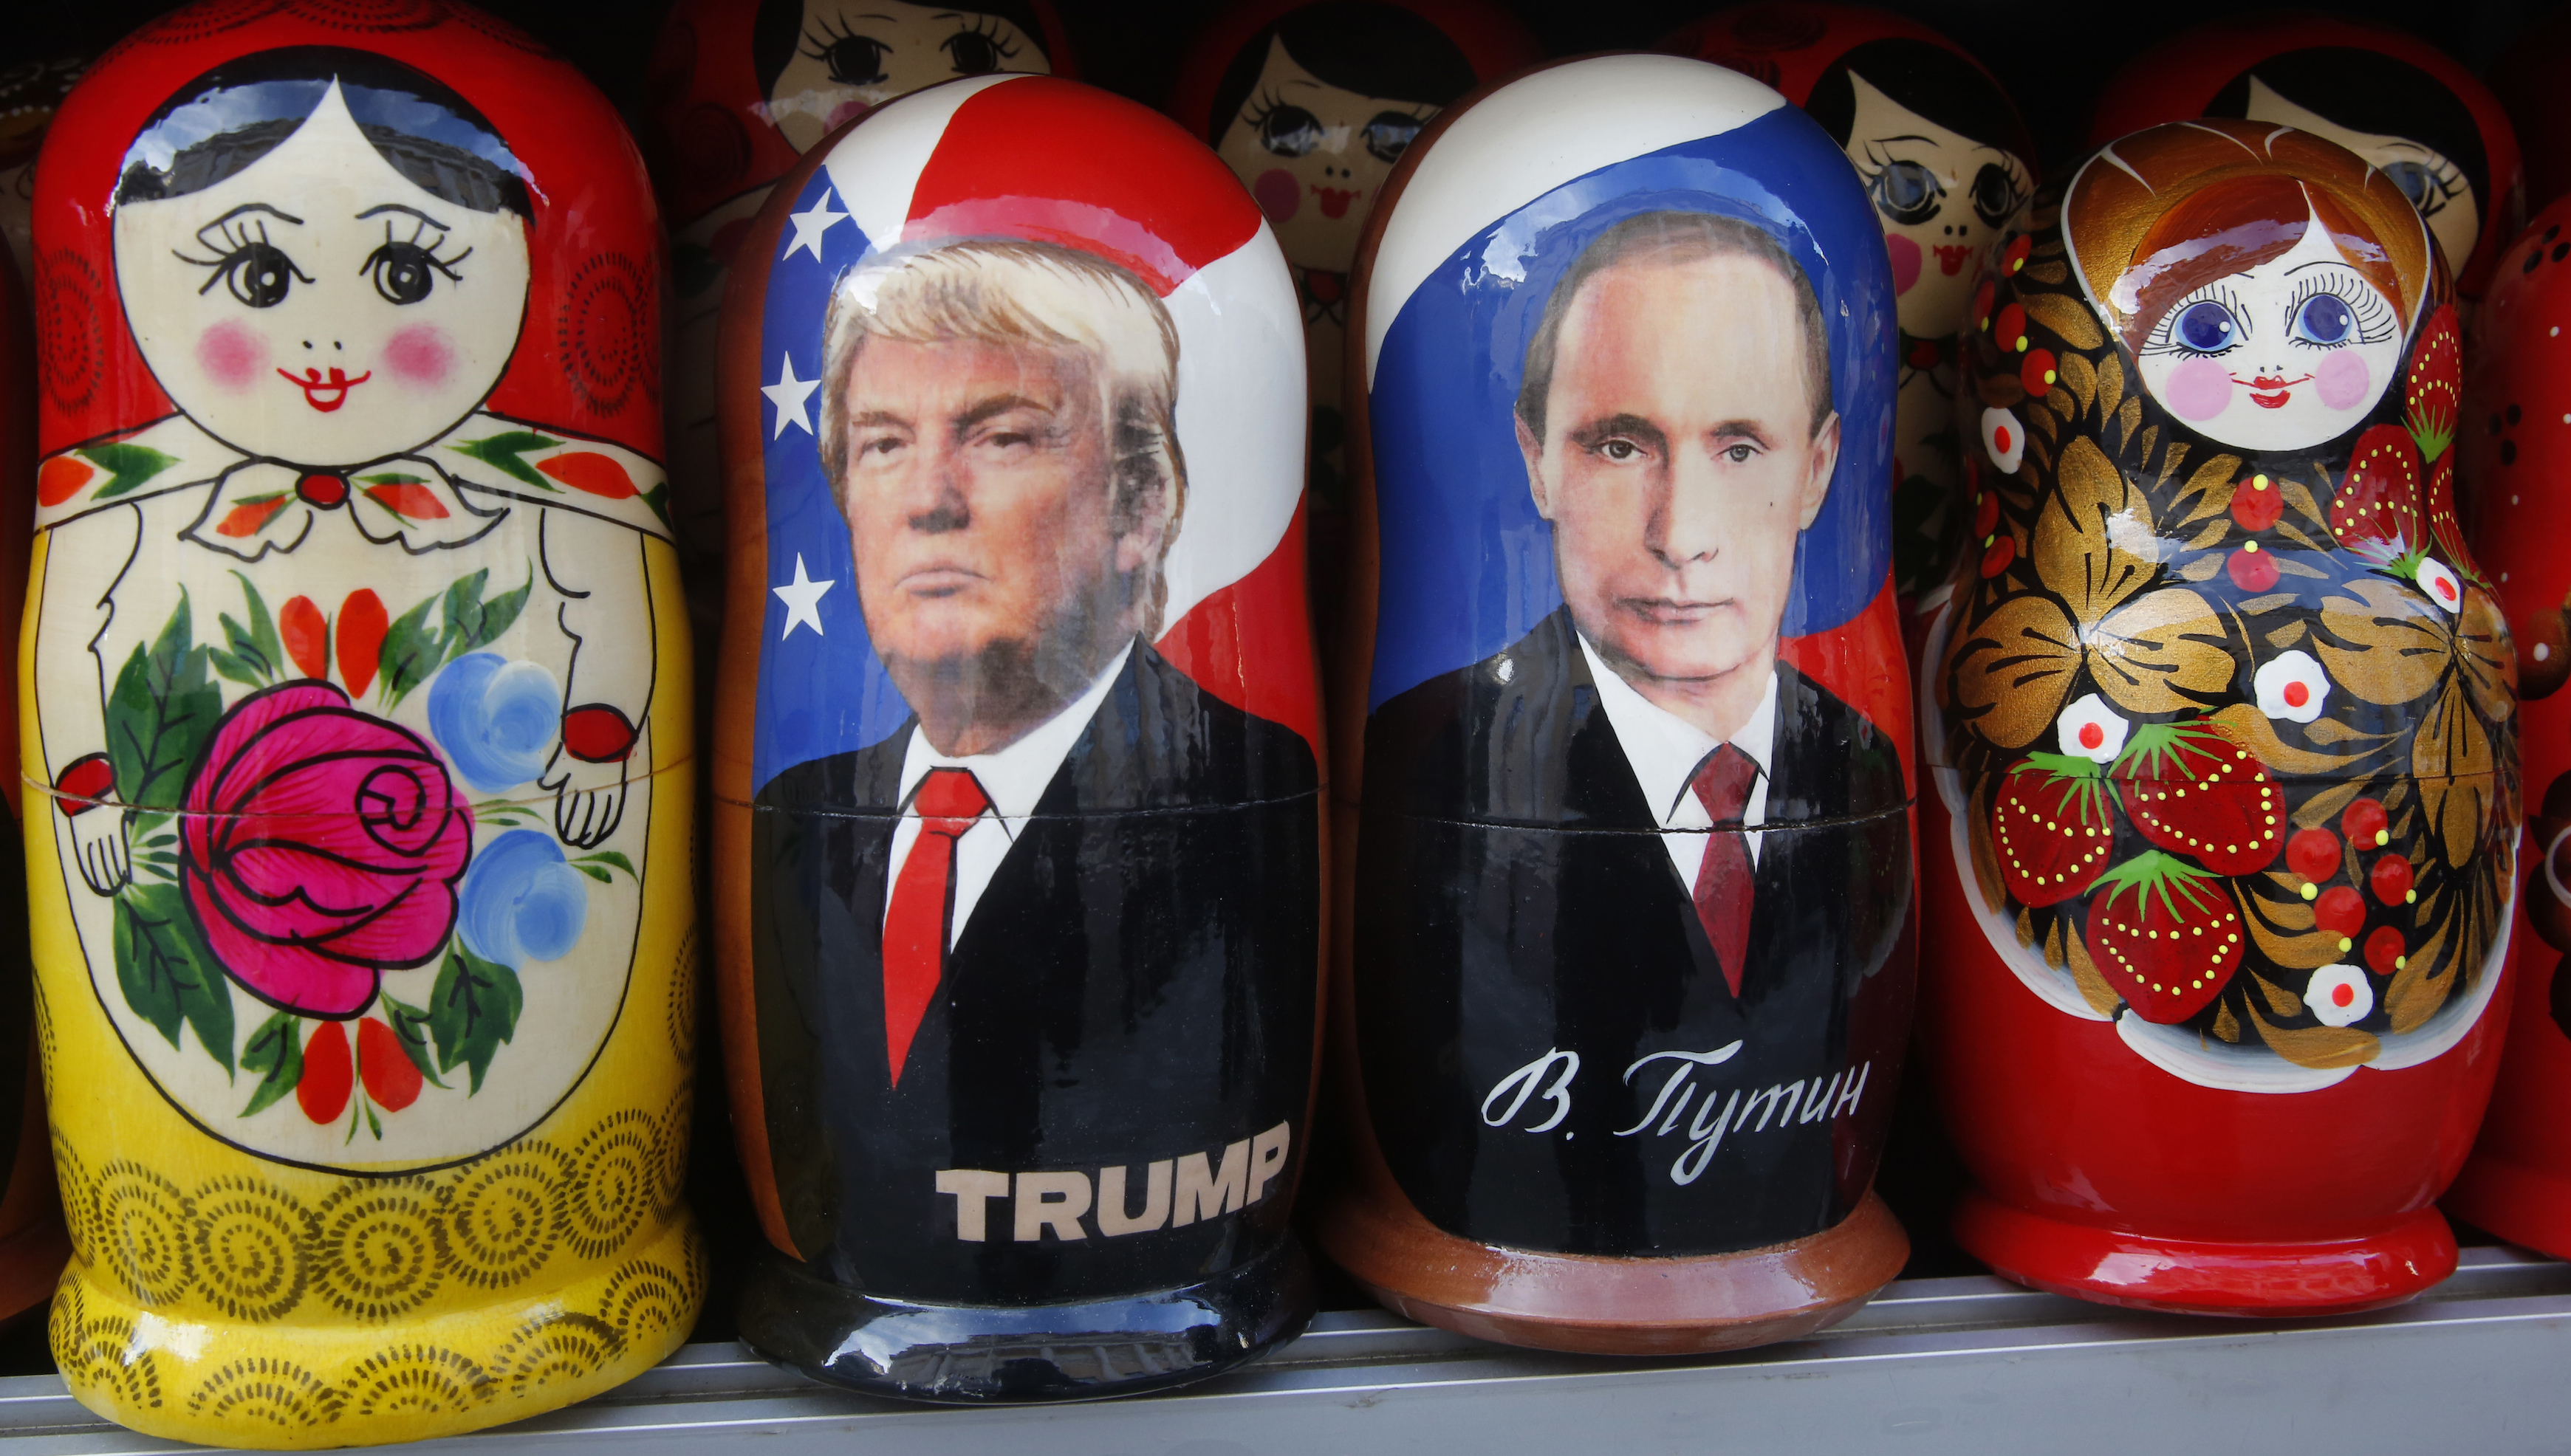 Traditional Russian wooden dolls called Matryoshka depicting Russian President Vladimir Putin and Donald Trump, hours before Donald Trump is to be sworn in as president of the United States, are displayed for sale at a street souvenir shop in St. Petersburg, Russia, Friday, Jan. 20, 2017.